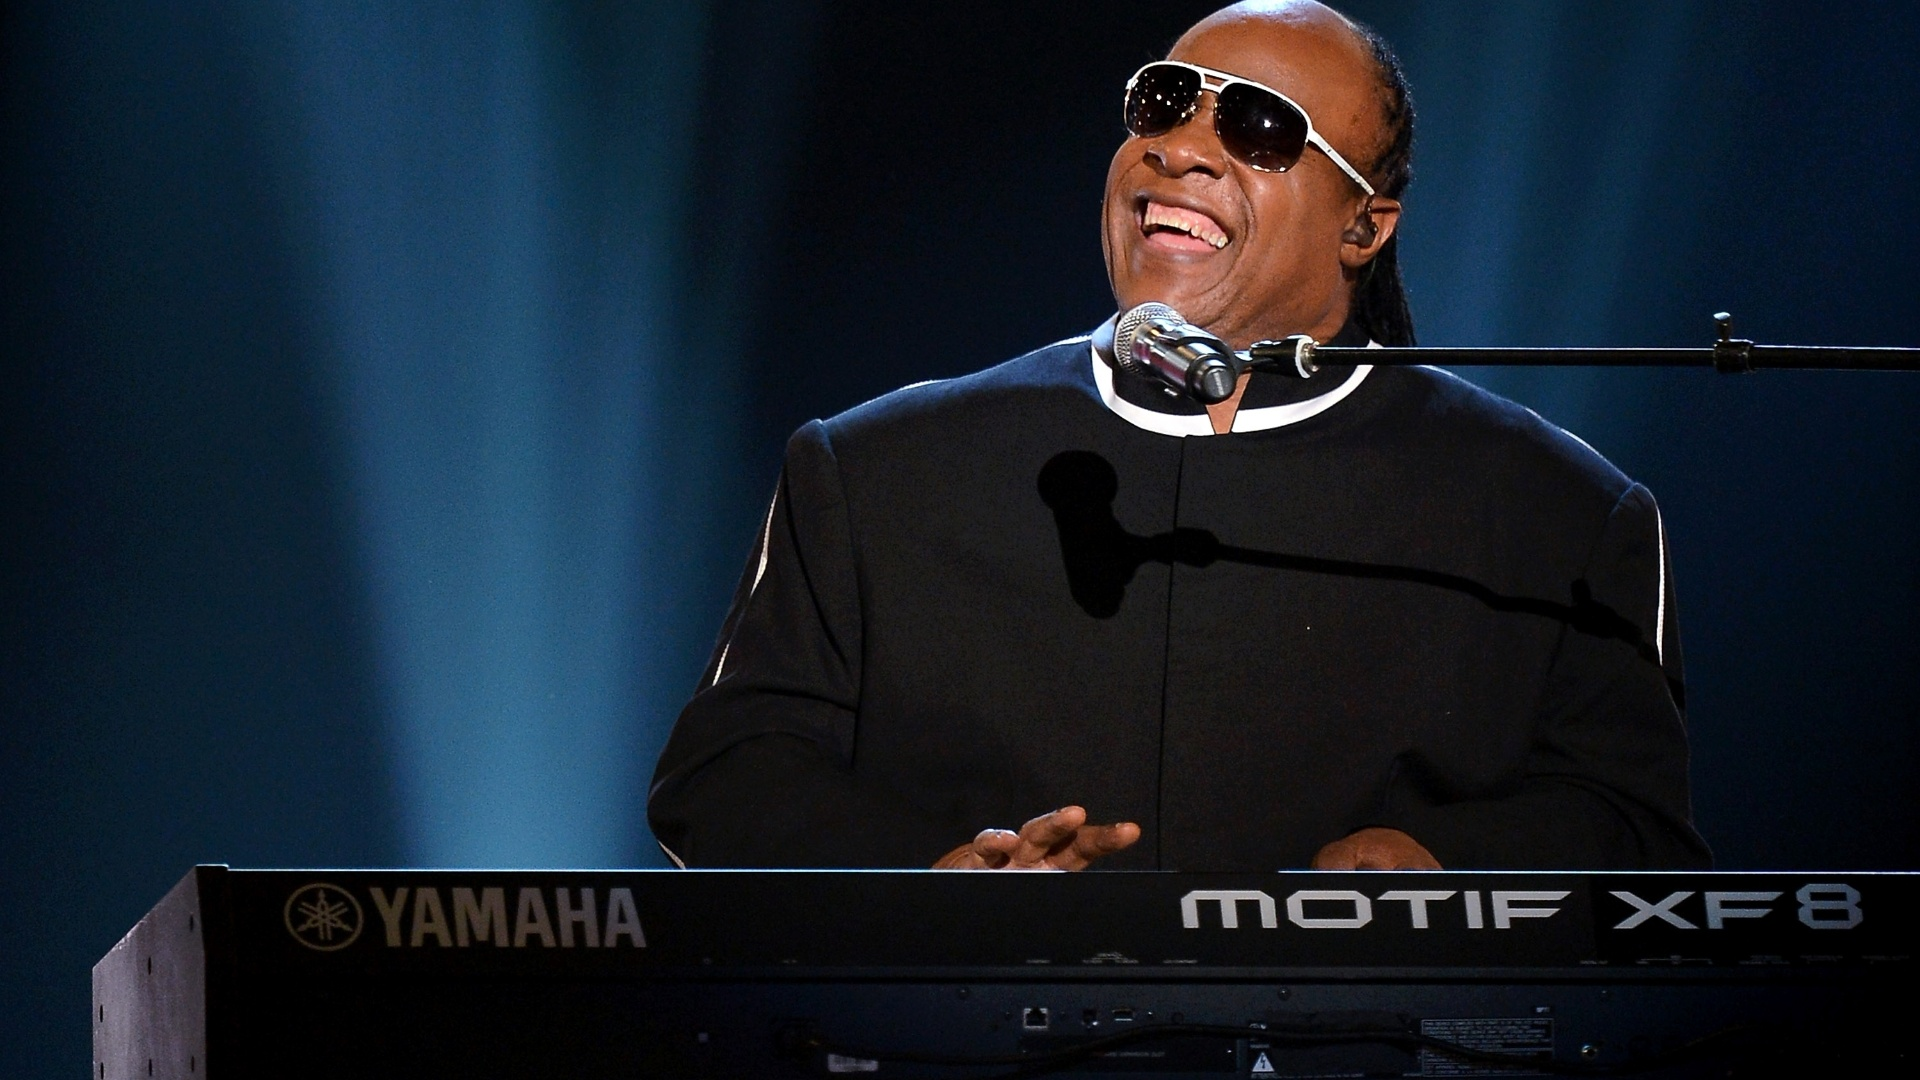 Android Wallpaper 3d Live Pc Stevie Wonder Wallpapers Pictures Images